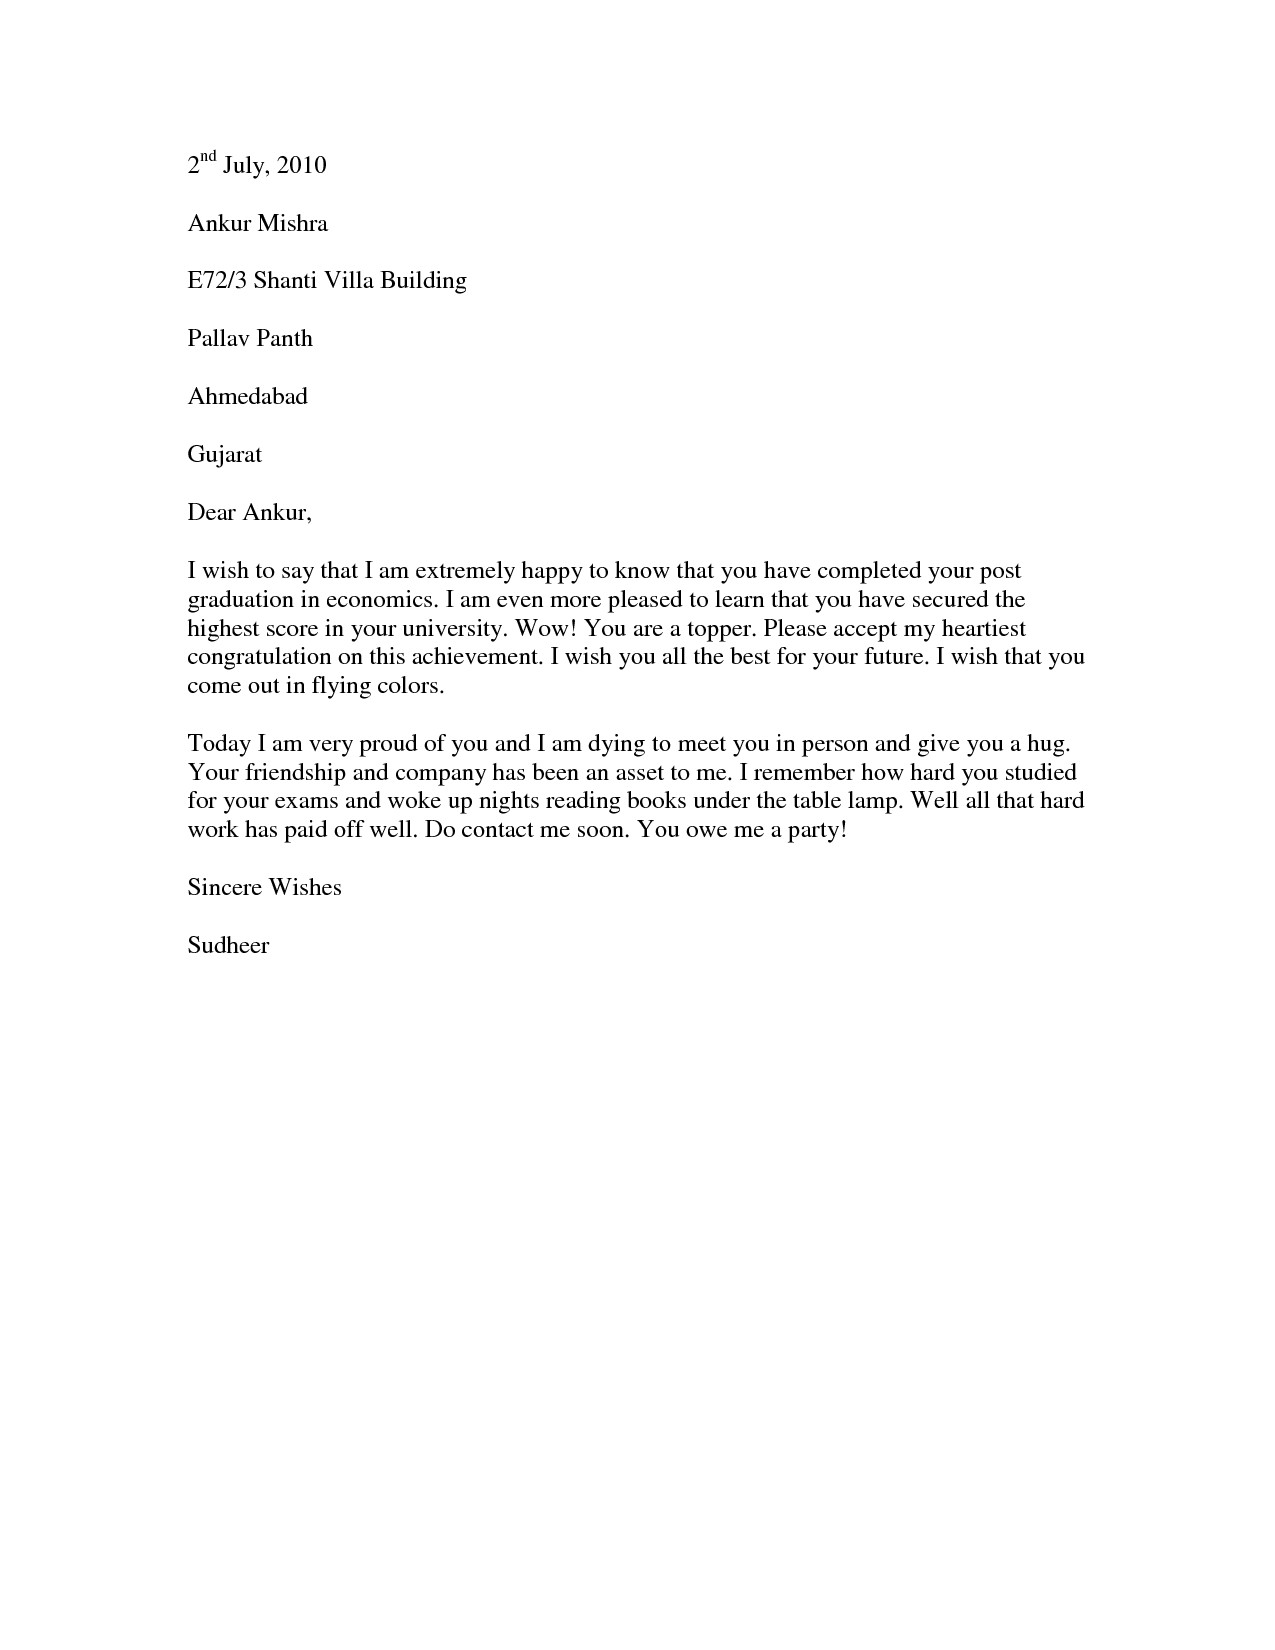 promotion congratulations letter example of a congratulations graduation congratulations letter example of a congratulations letter to send to a college graduate who